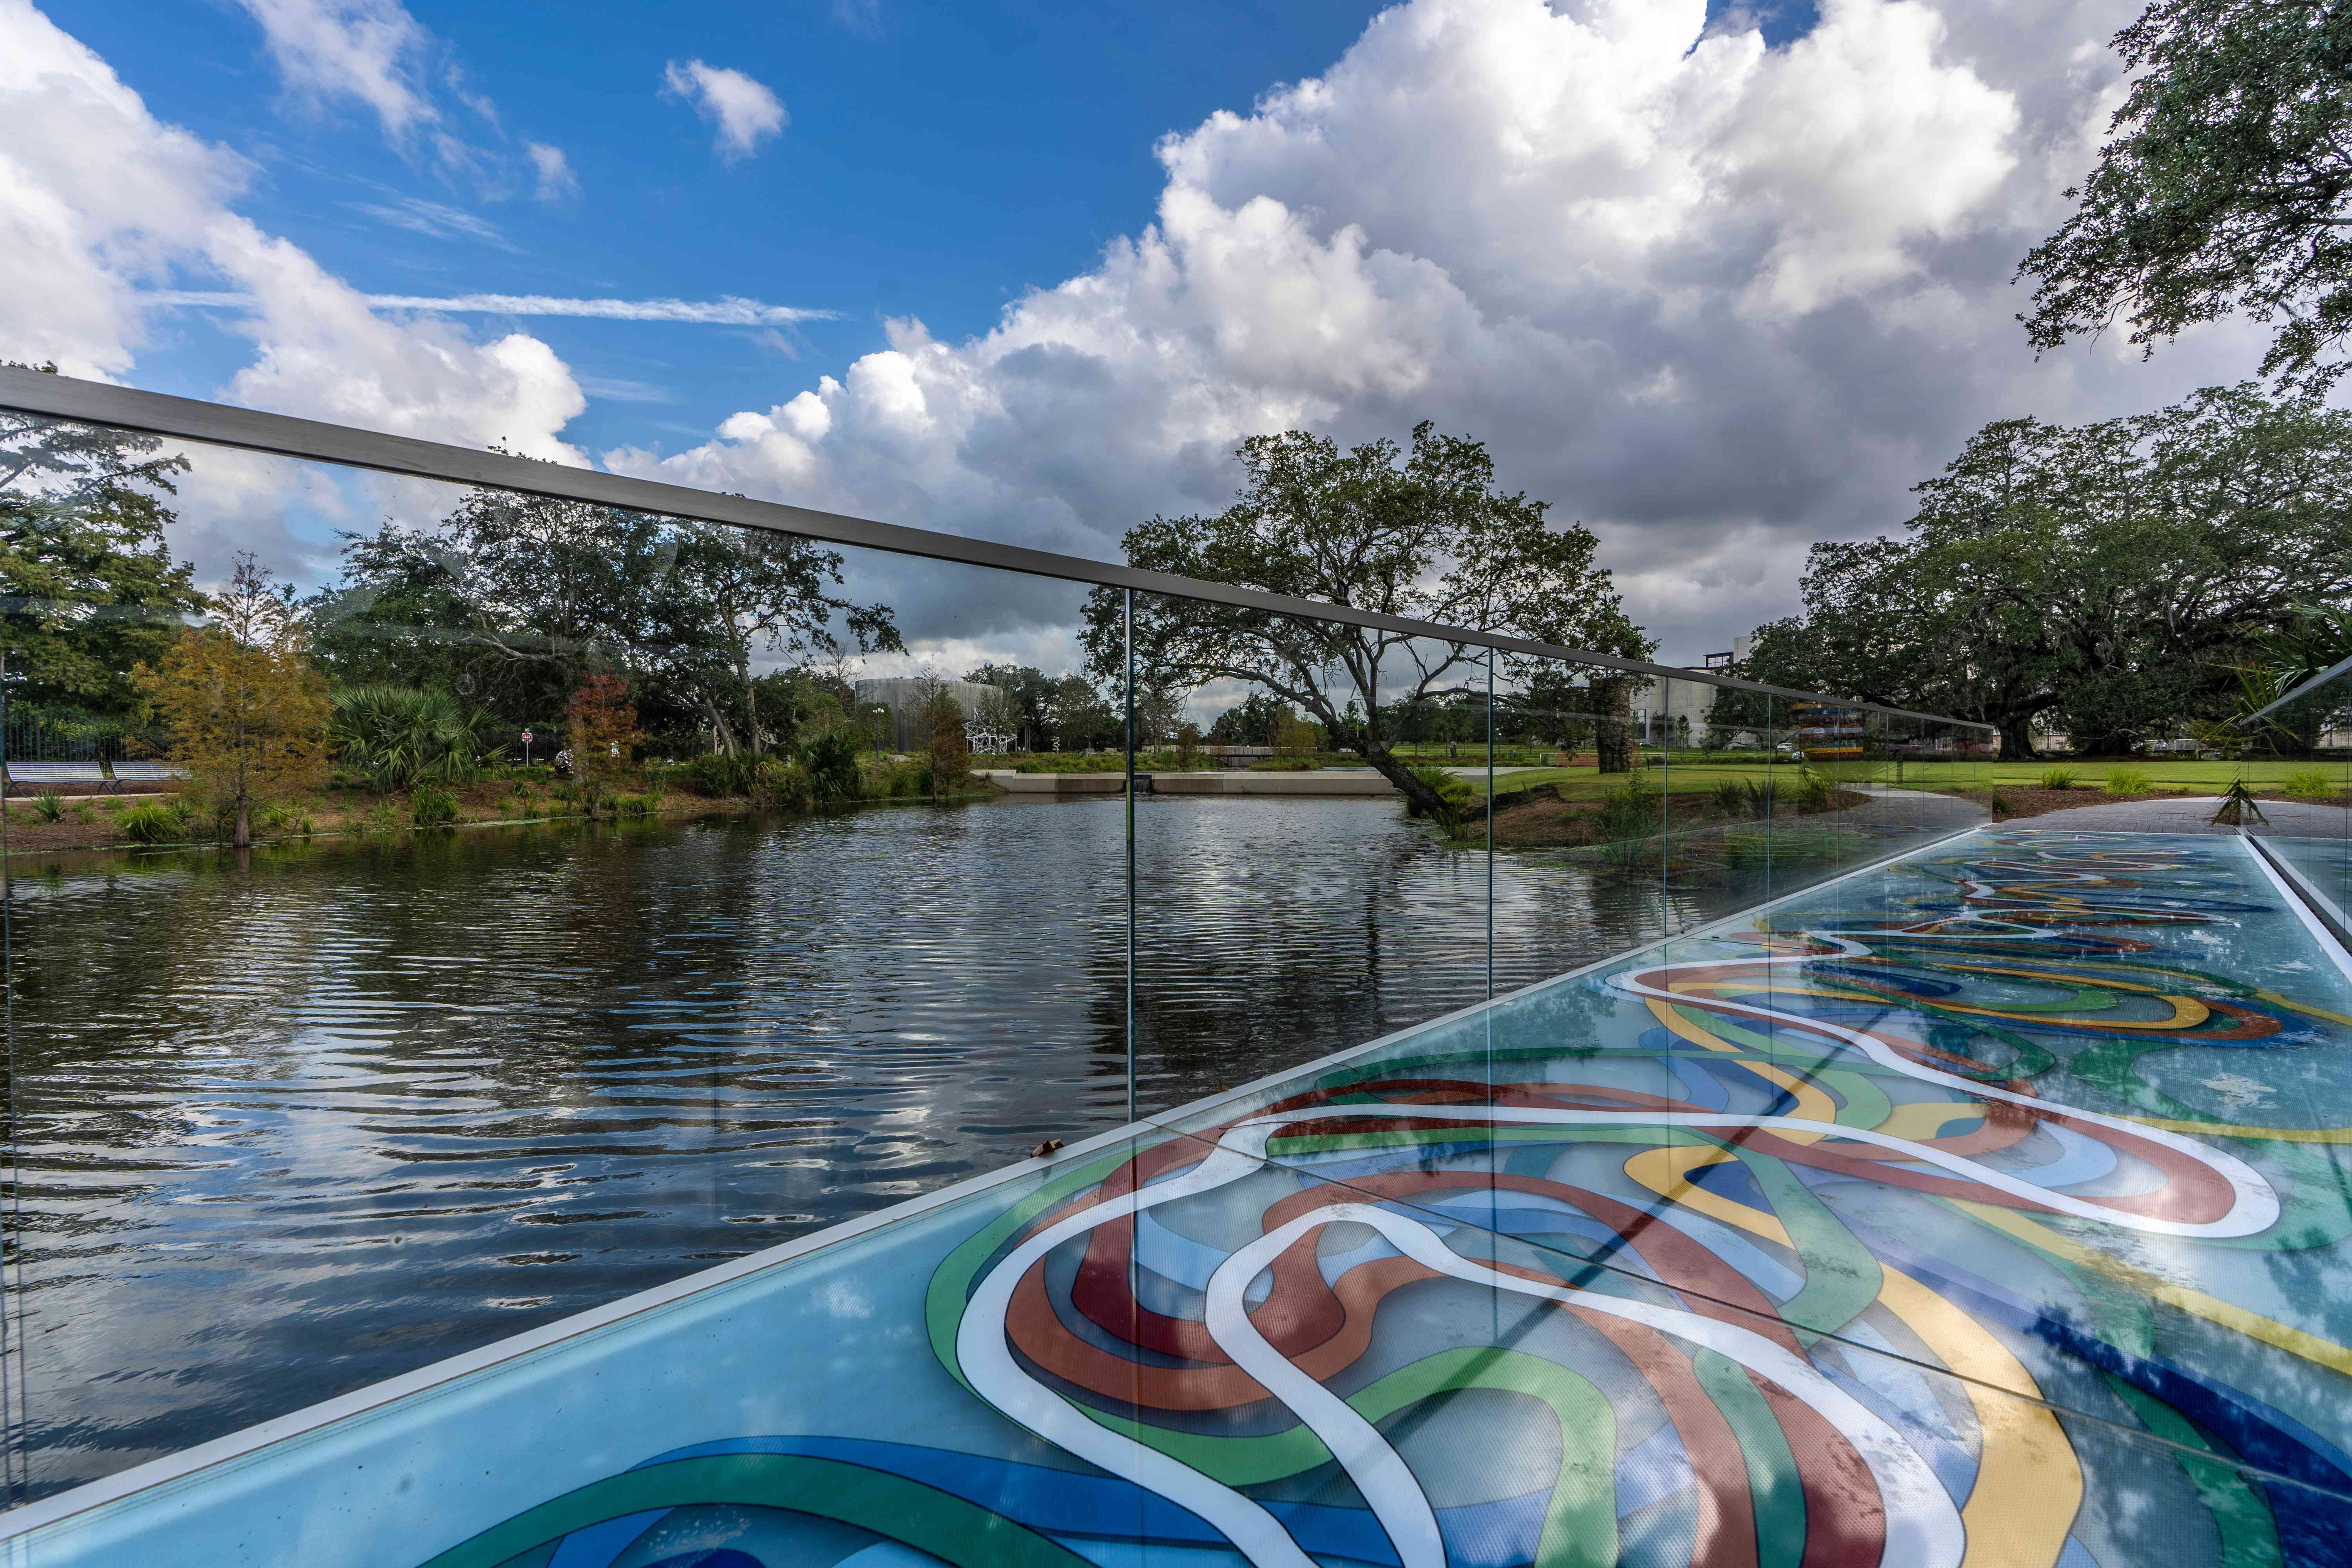 colorful over-water walkway in a New Orleans Park